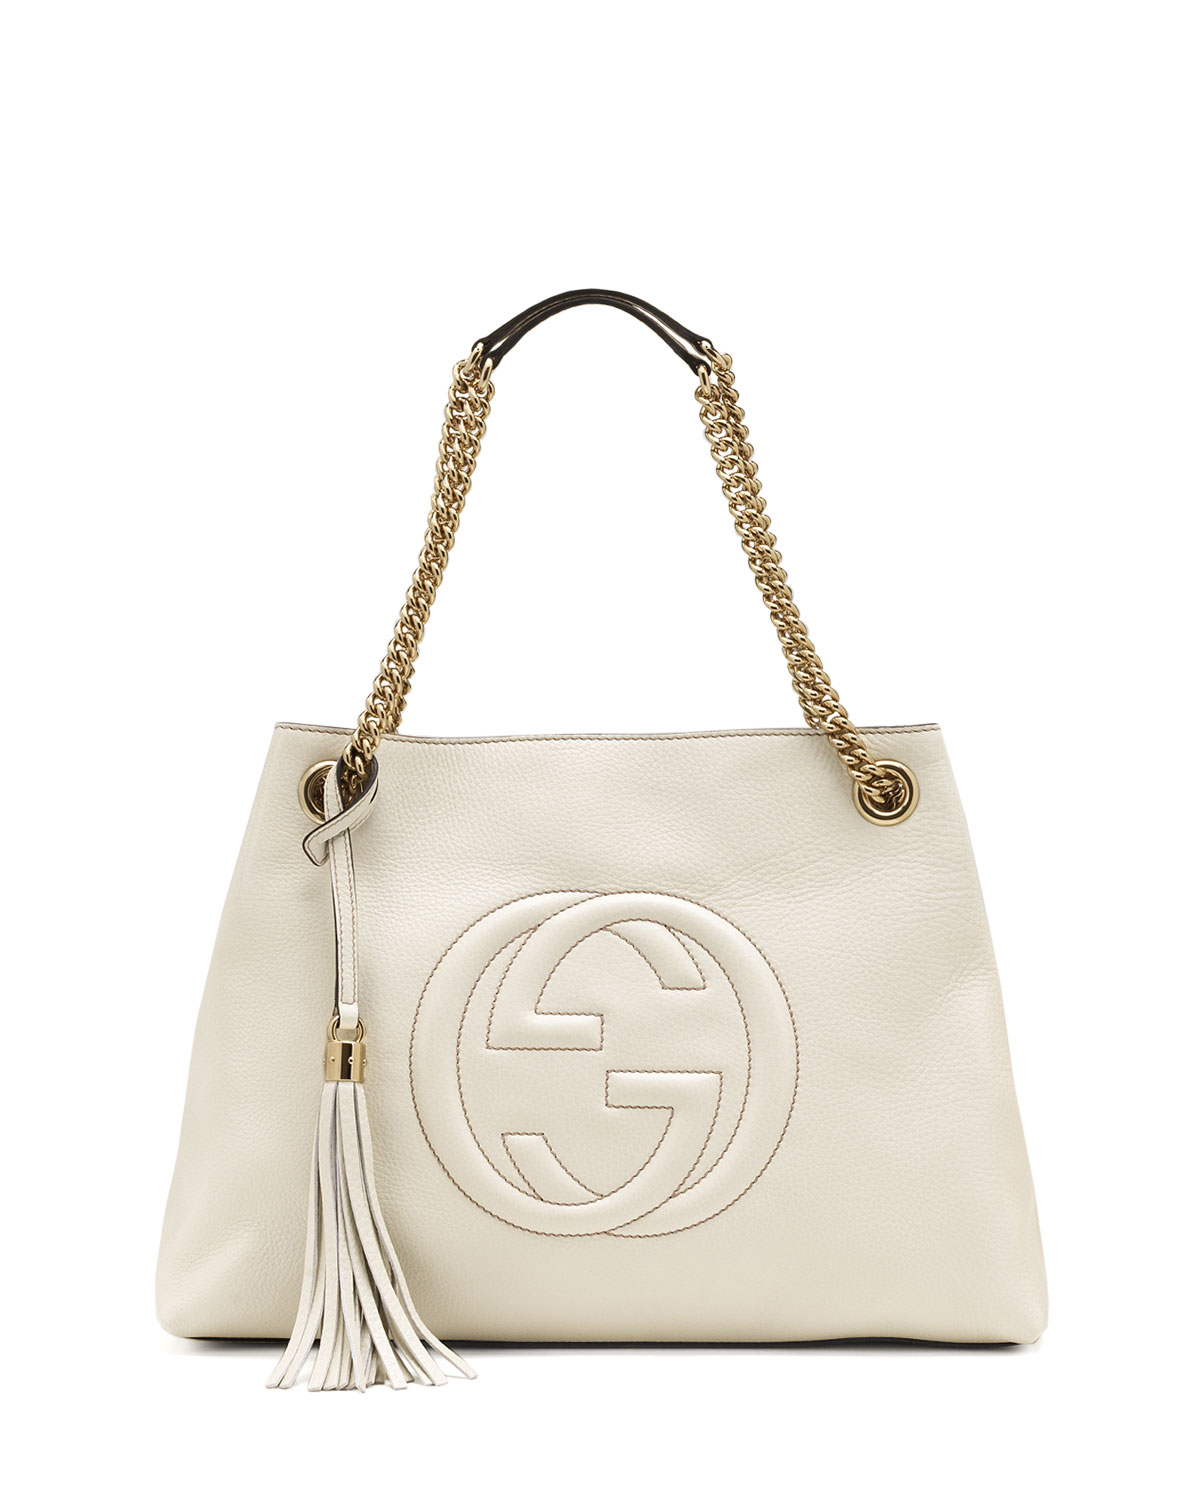 91ee8ab056d5 Gucci Soho Leather Medium Chain-Strap Tote, White | Neiman Marcus